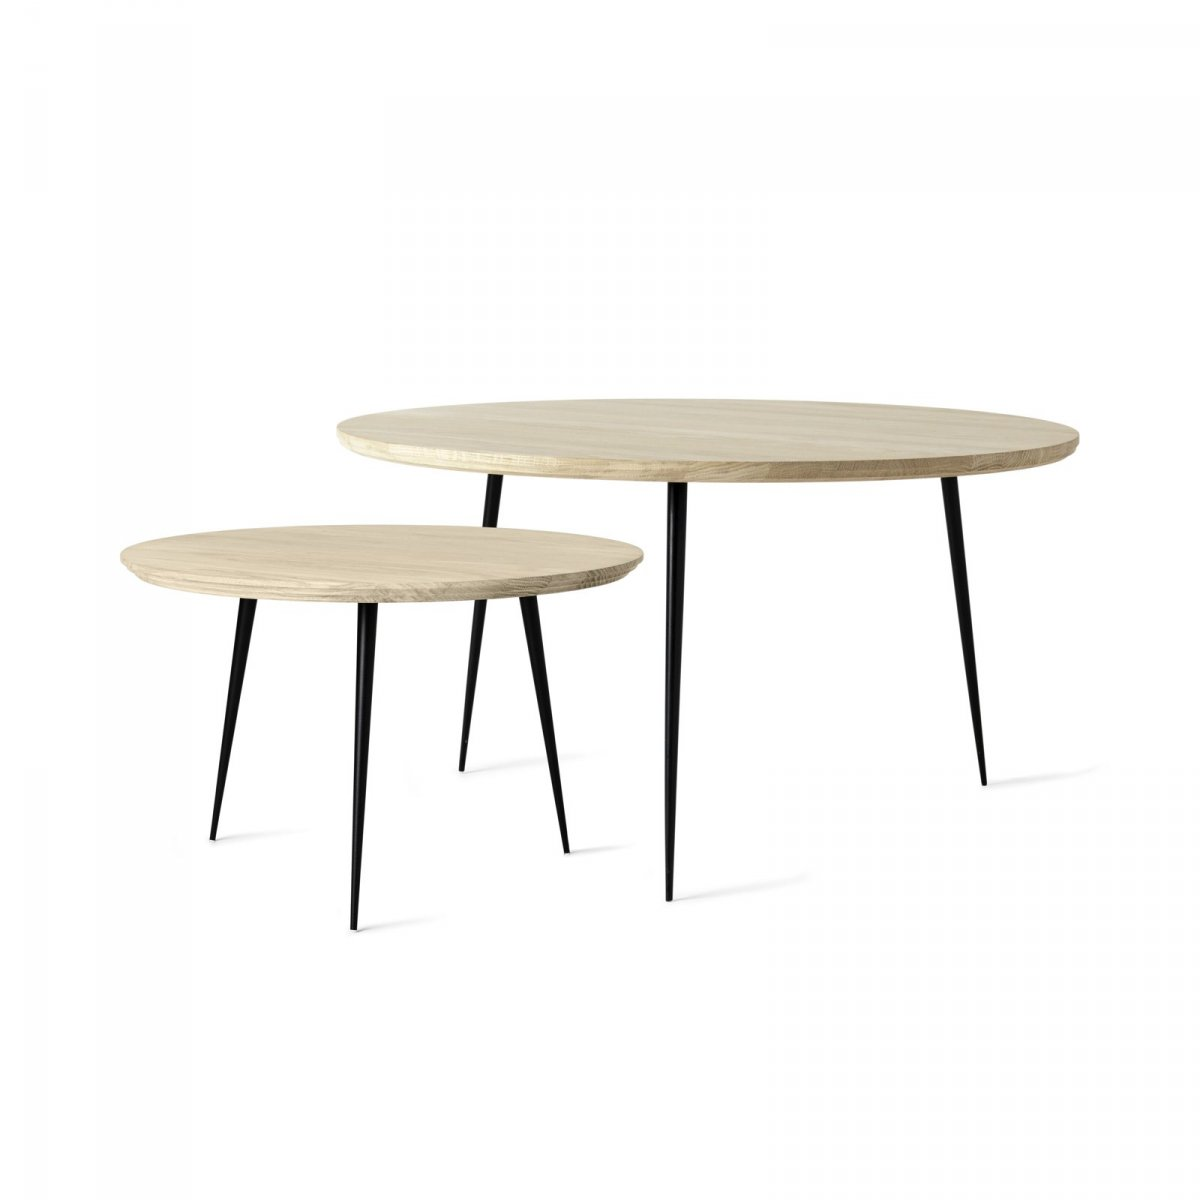 Disc Tables, small and medium.